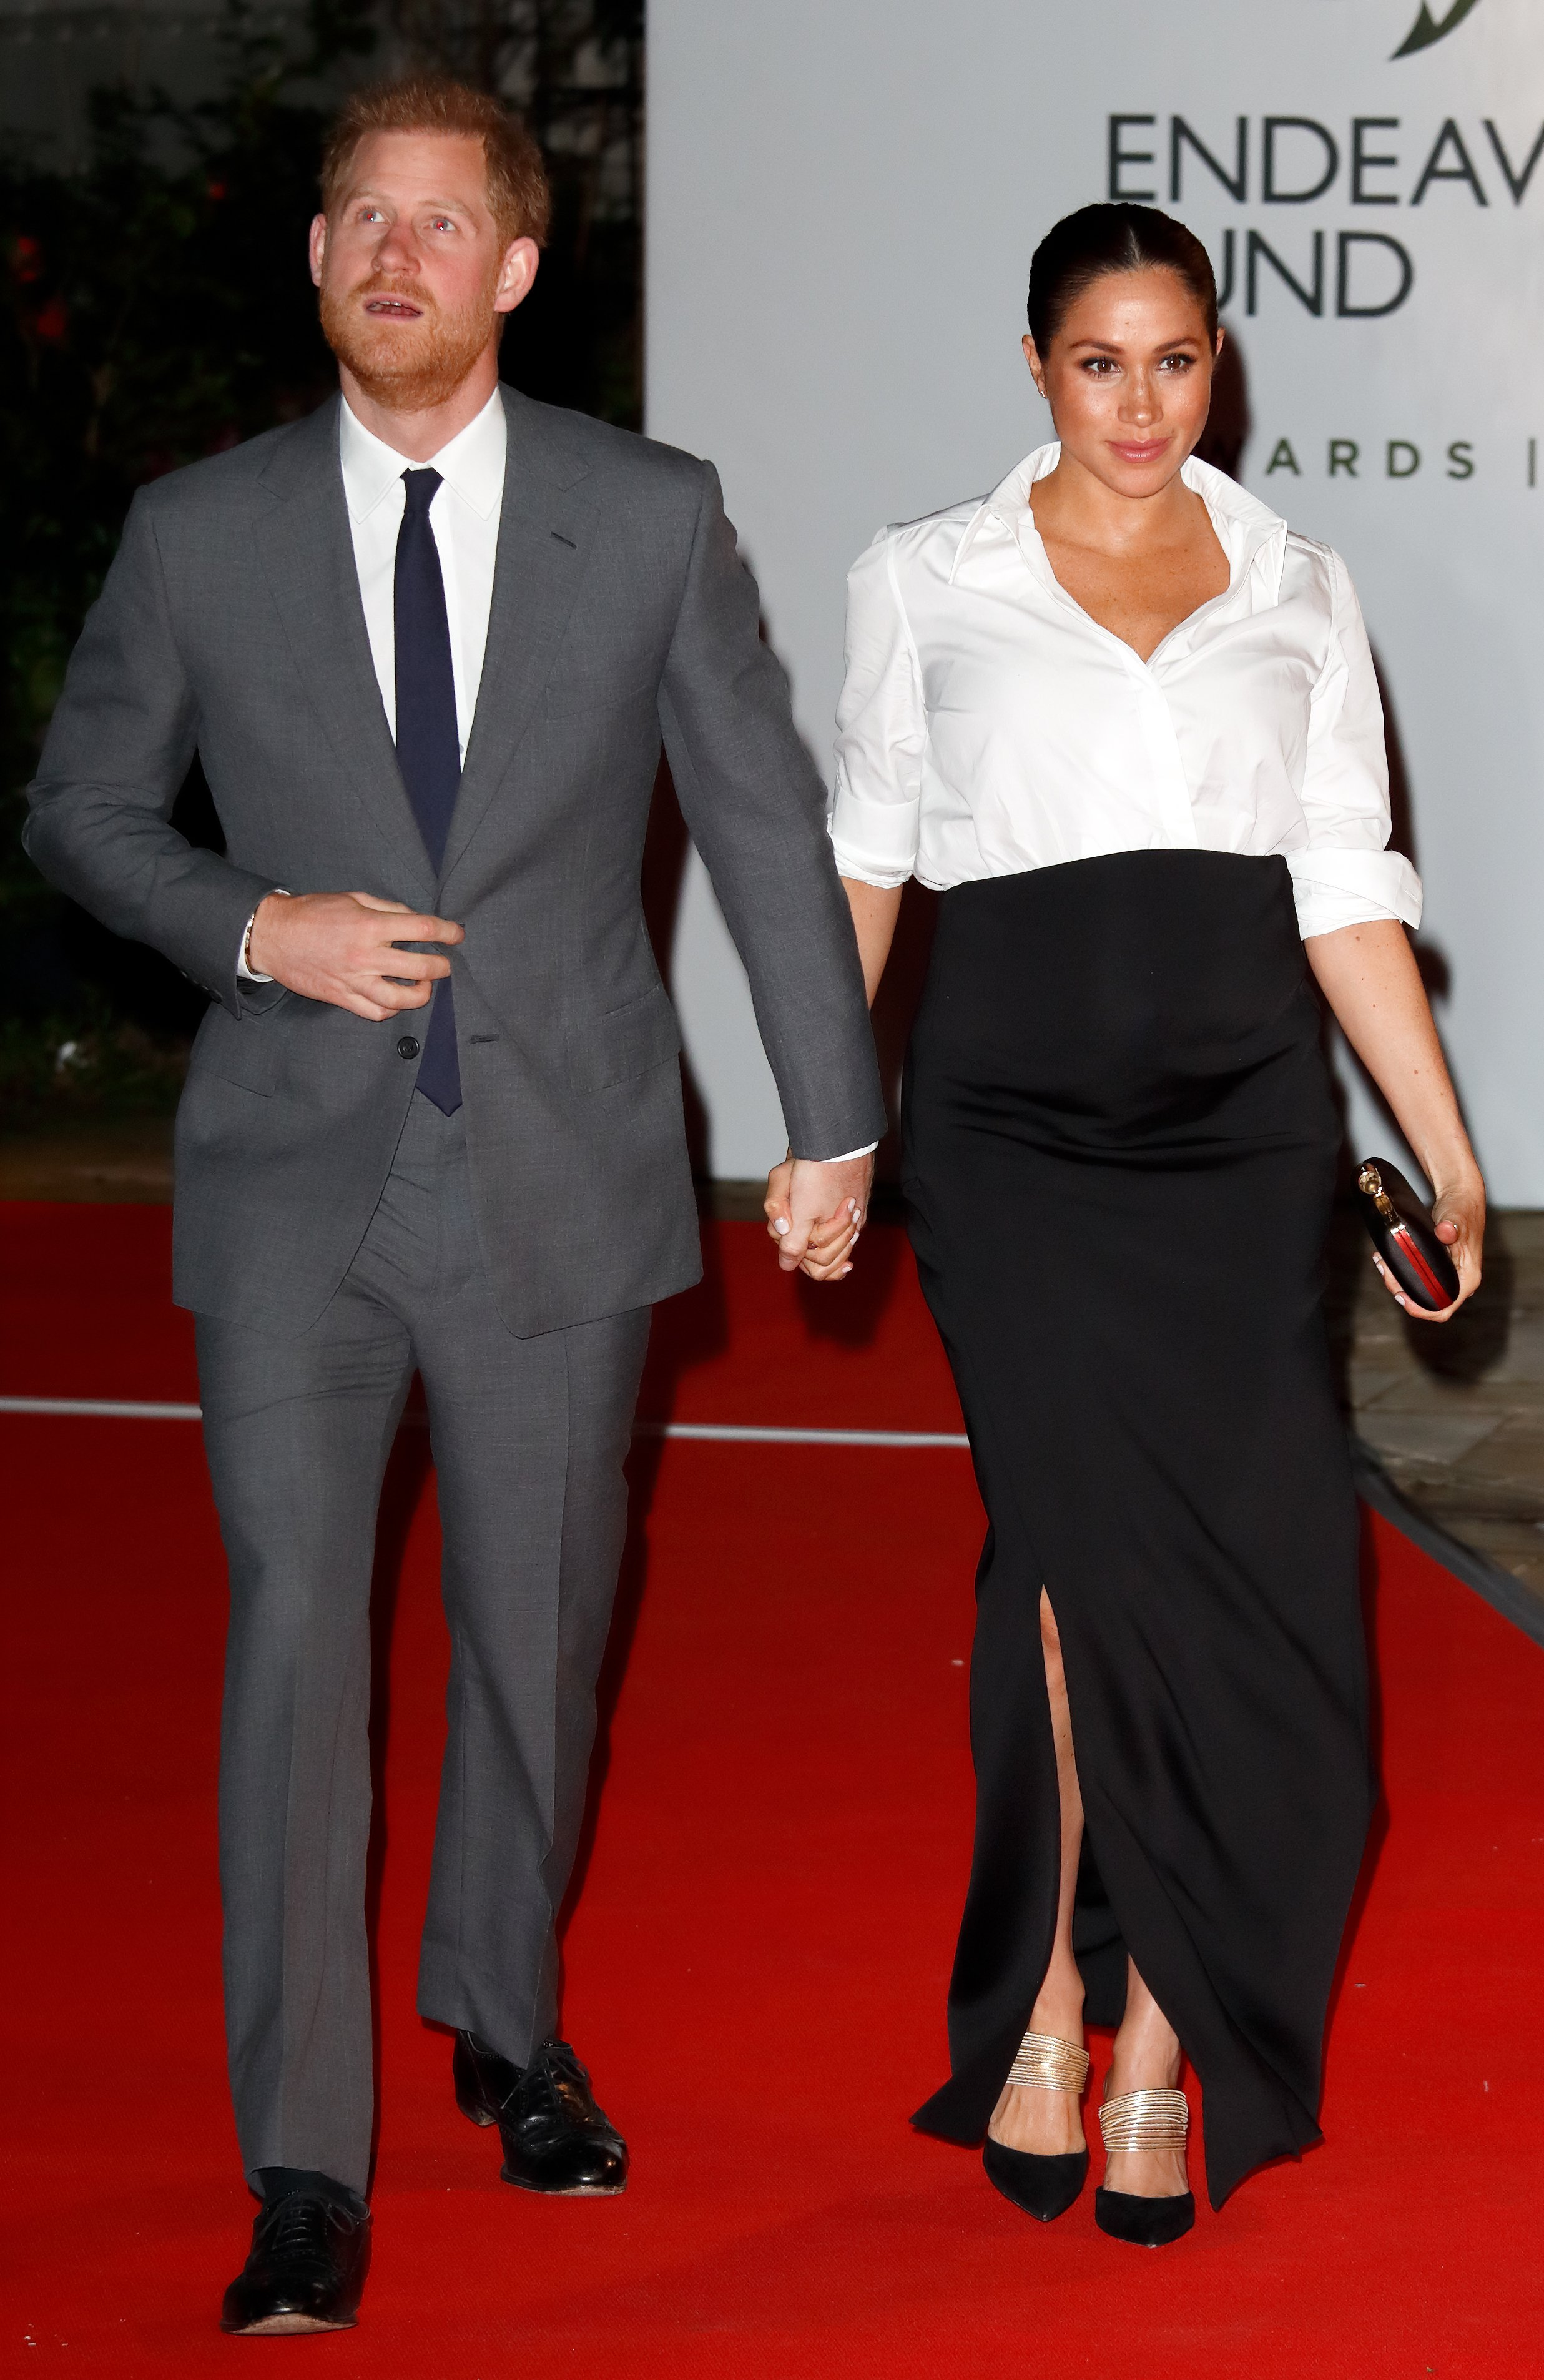 Prince Harry and Meghan Markle at the Endeavour Fund Awards 2019 | Photo: Getty Images